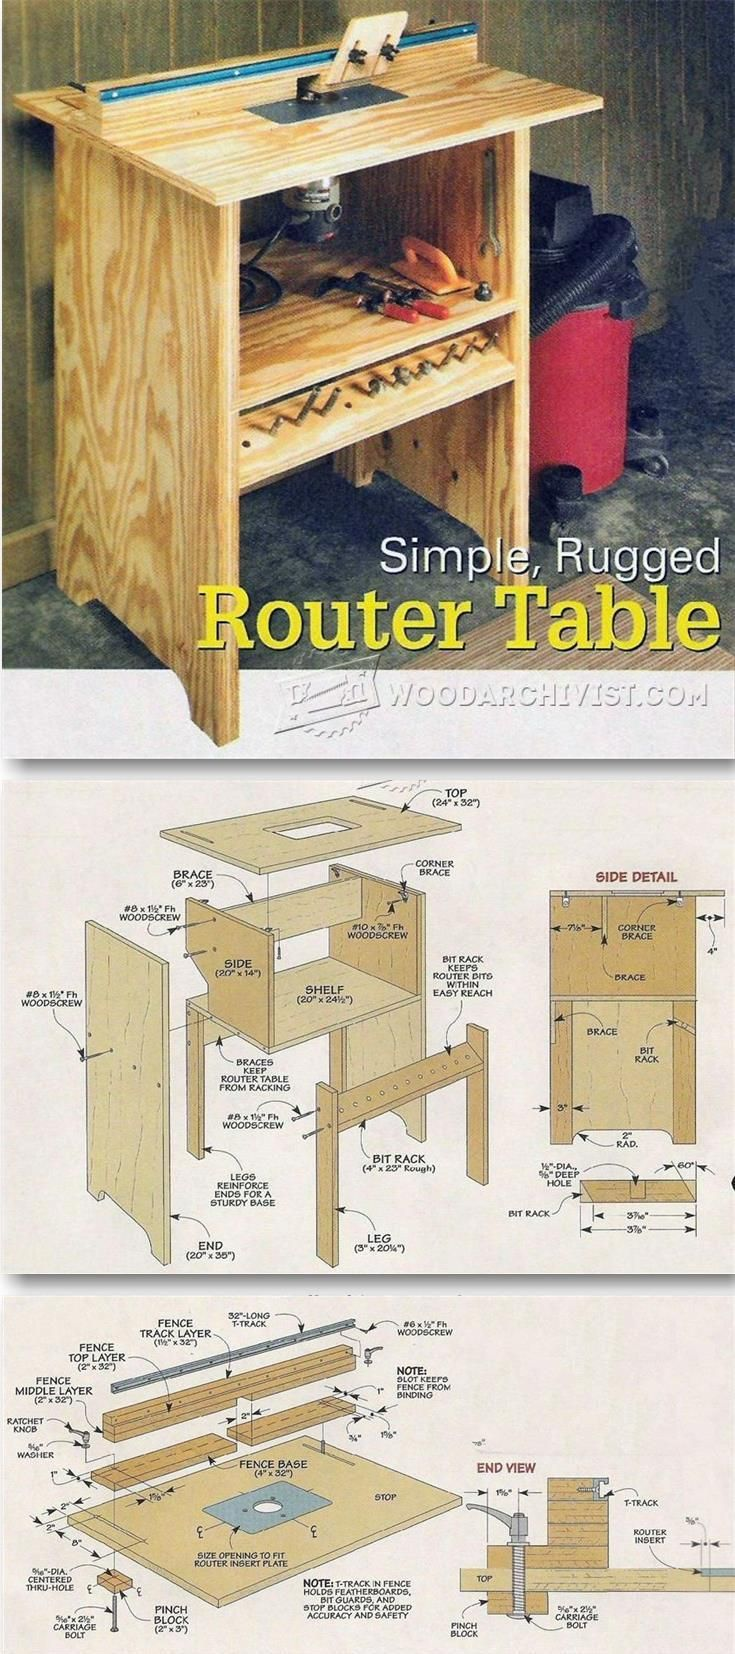 Simple router table plans router tips jigs and fixtures simple router table plans router tips jigs and fixtures woodarchivist greentooth Choice Image